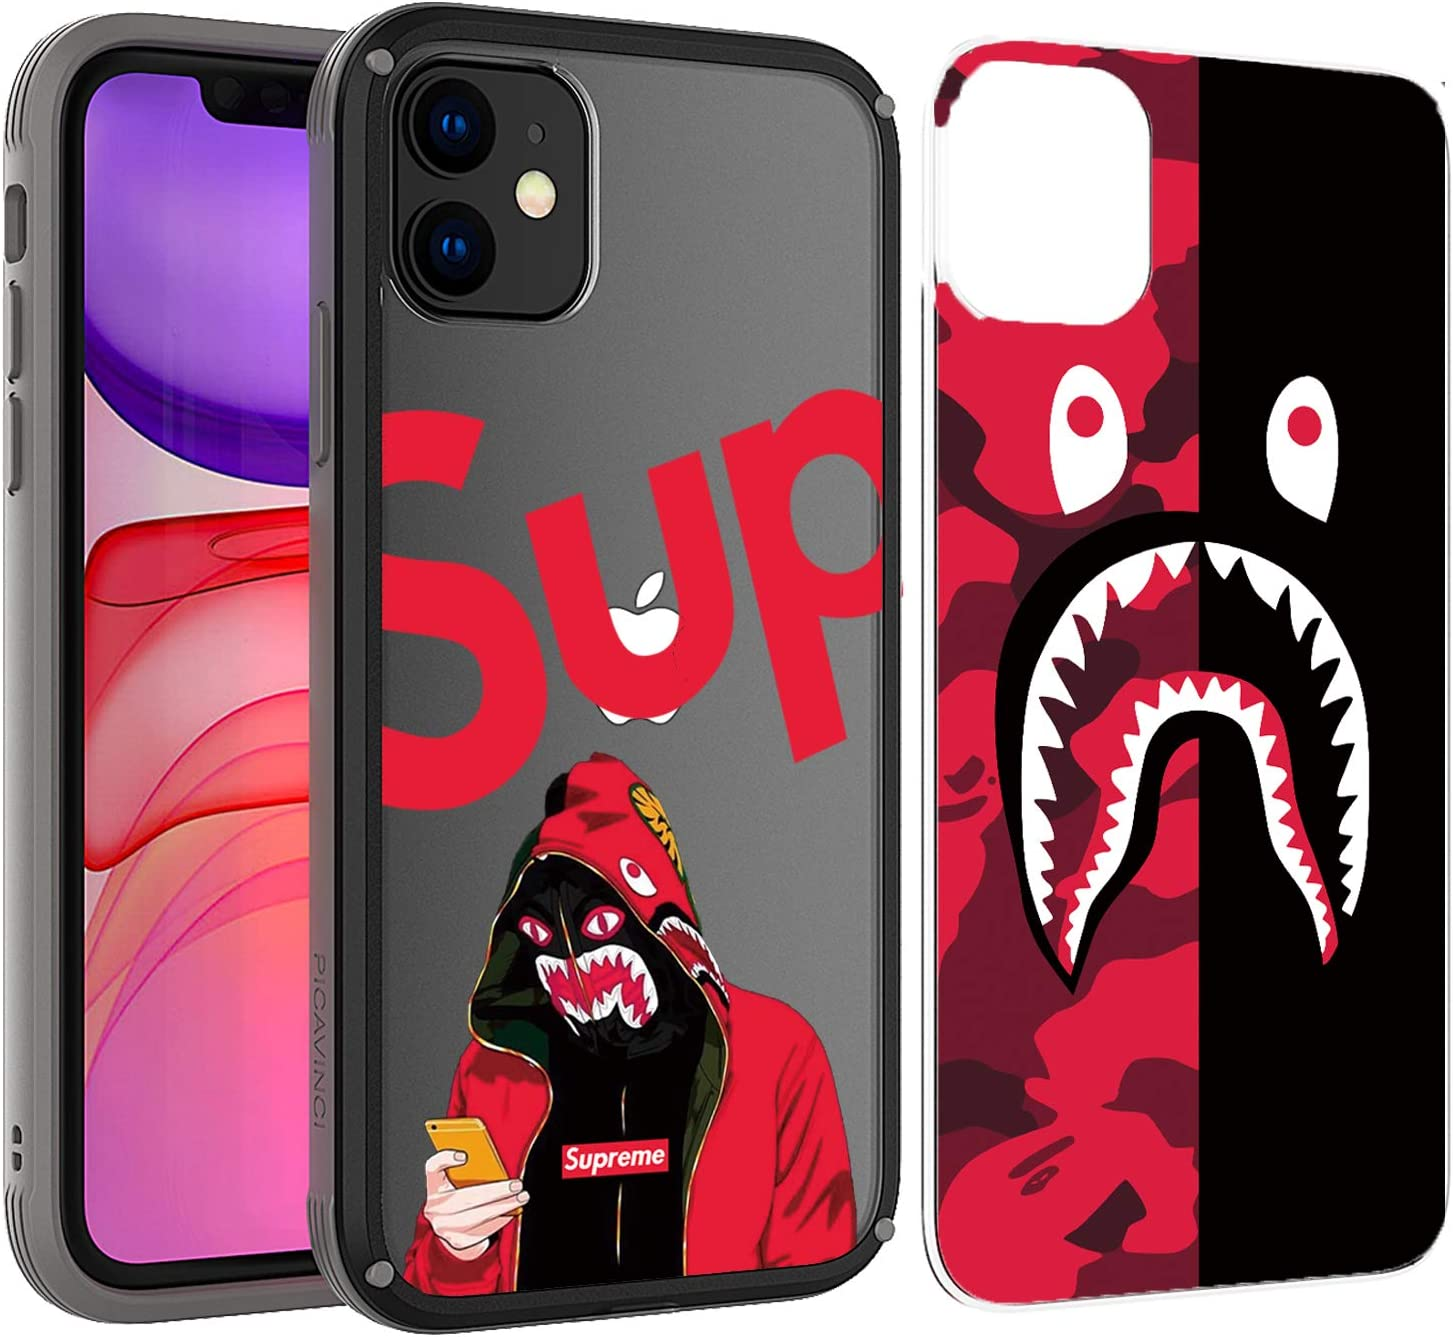 PICAVINCI SwitchME iPhone 11 Case, Shark Street Fashion Black Clear Matte Protective Cover